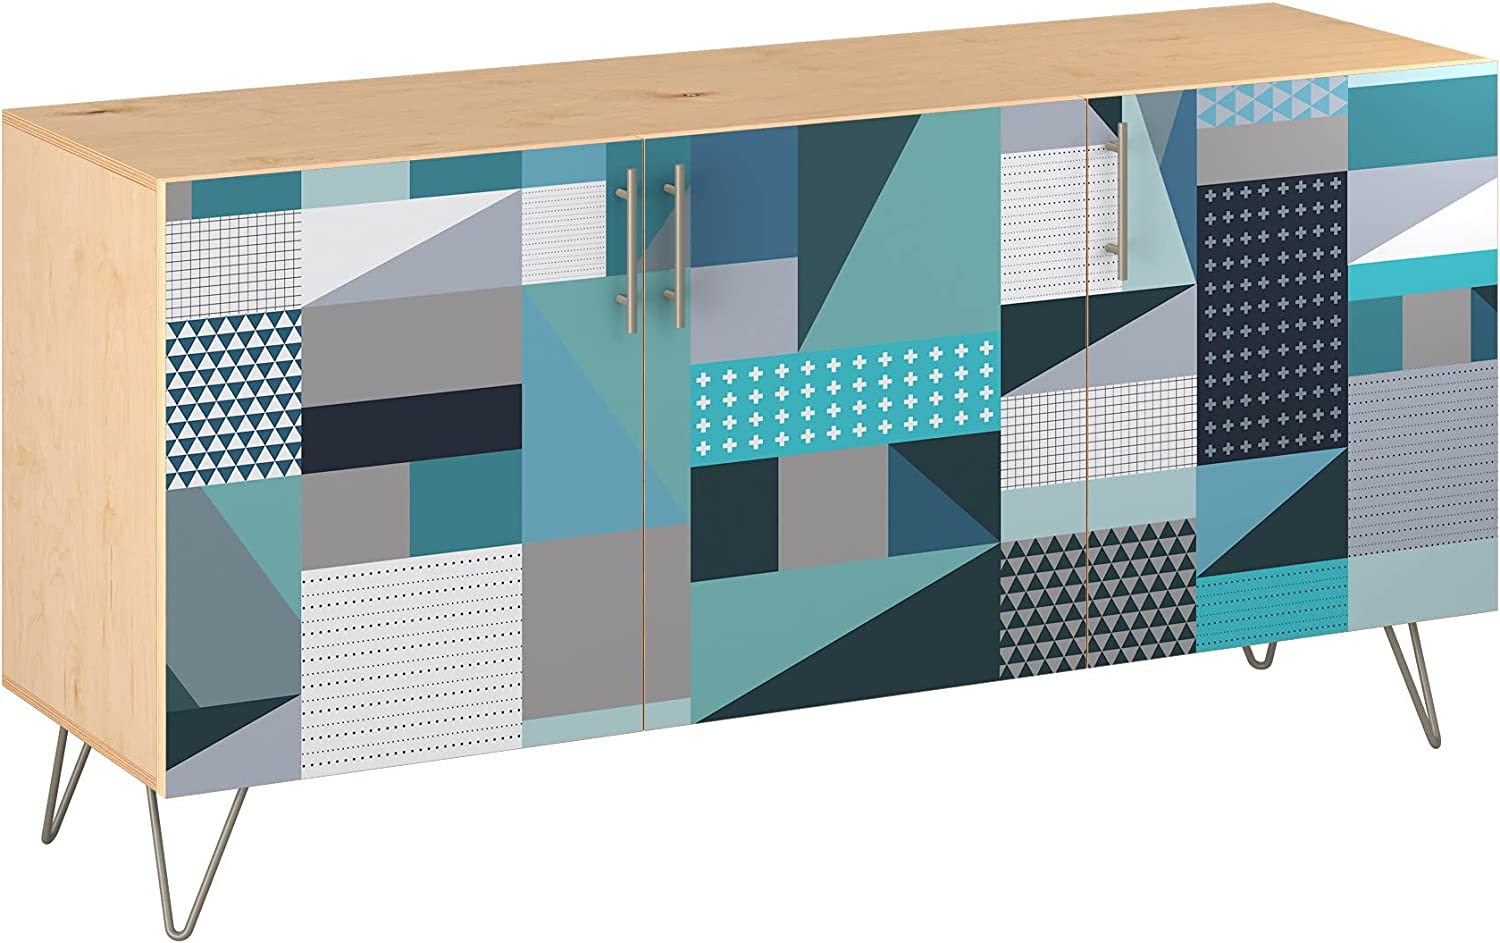 Poppy Sideboard - Weekly update Natural Velma Design 11 sold out 5 Base Sty in Colors